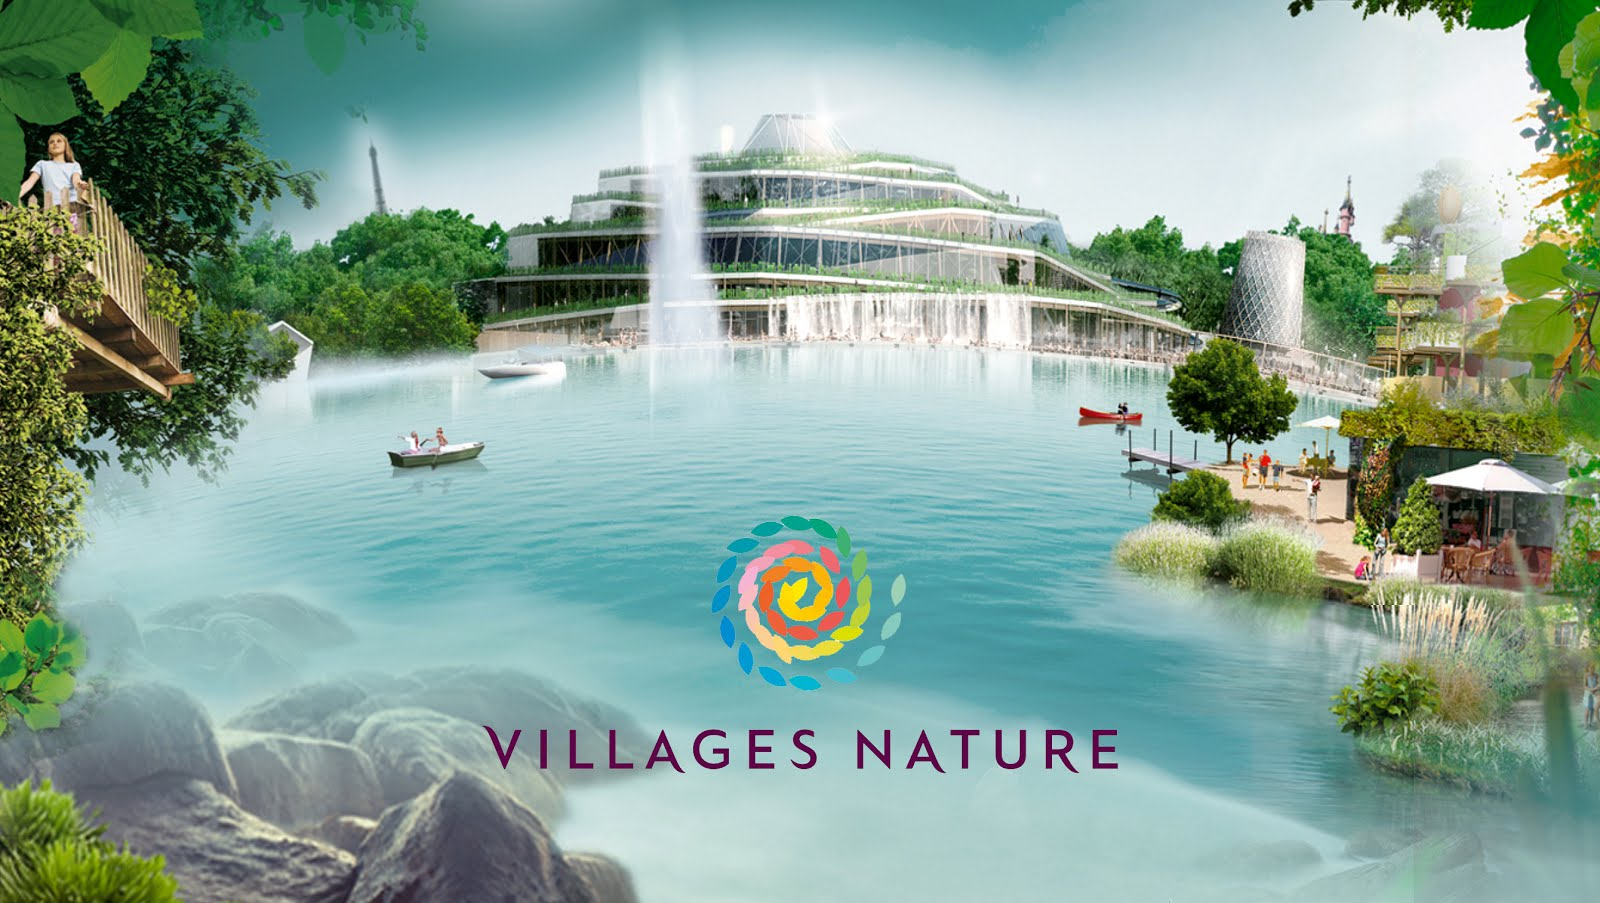 Er ffnung villages nature bei disneyland paris im herbst 2017 bontour - Vacances de fevrier 2017 paris ...